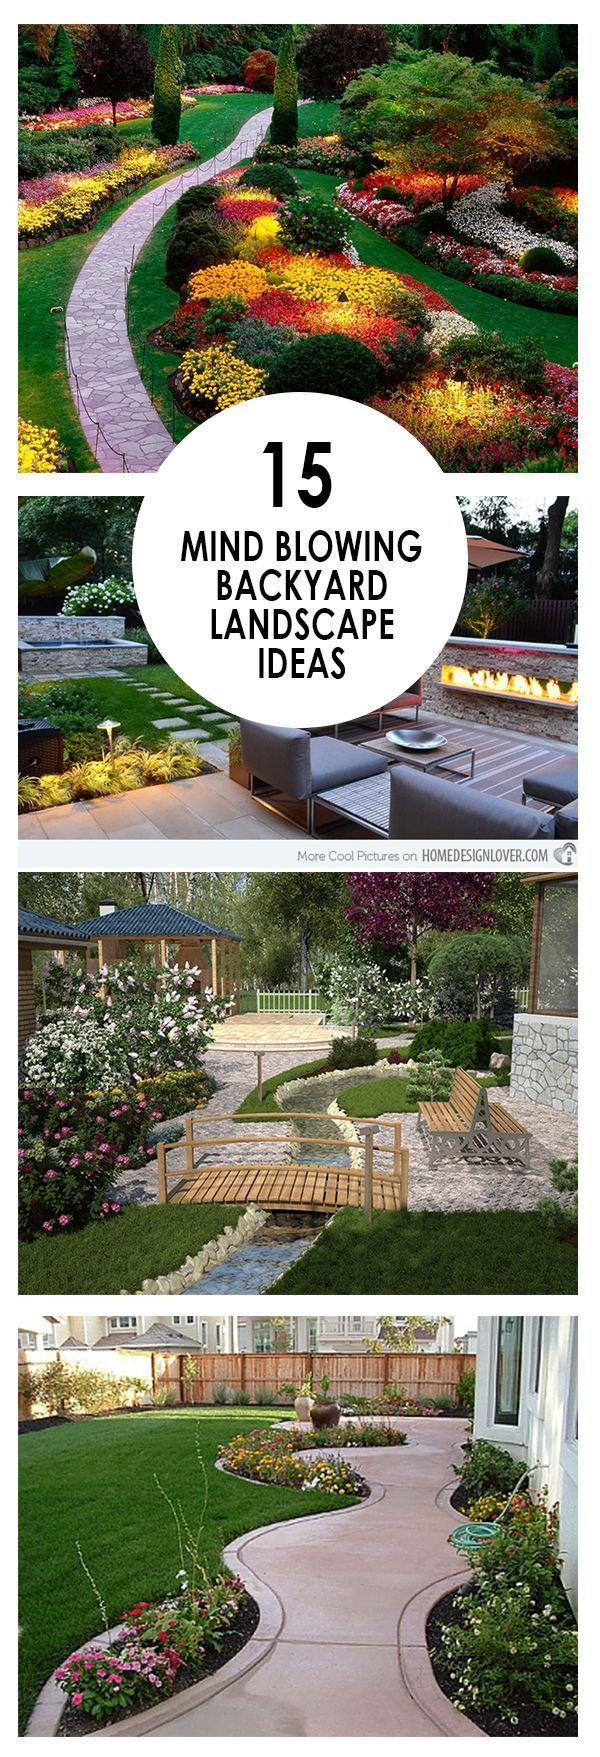 Backyard landscaping, landscape inspiration, landscape ideas, DIY landscaping, popular pin, gardening, outdoor living, outdoor entertainment.